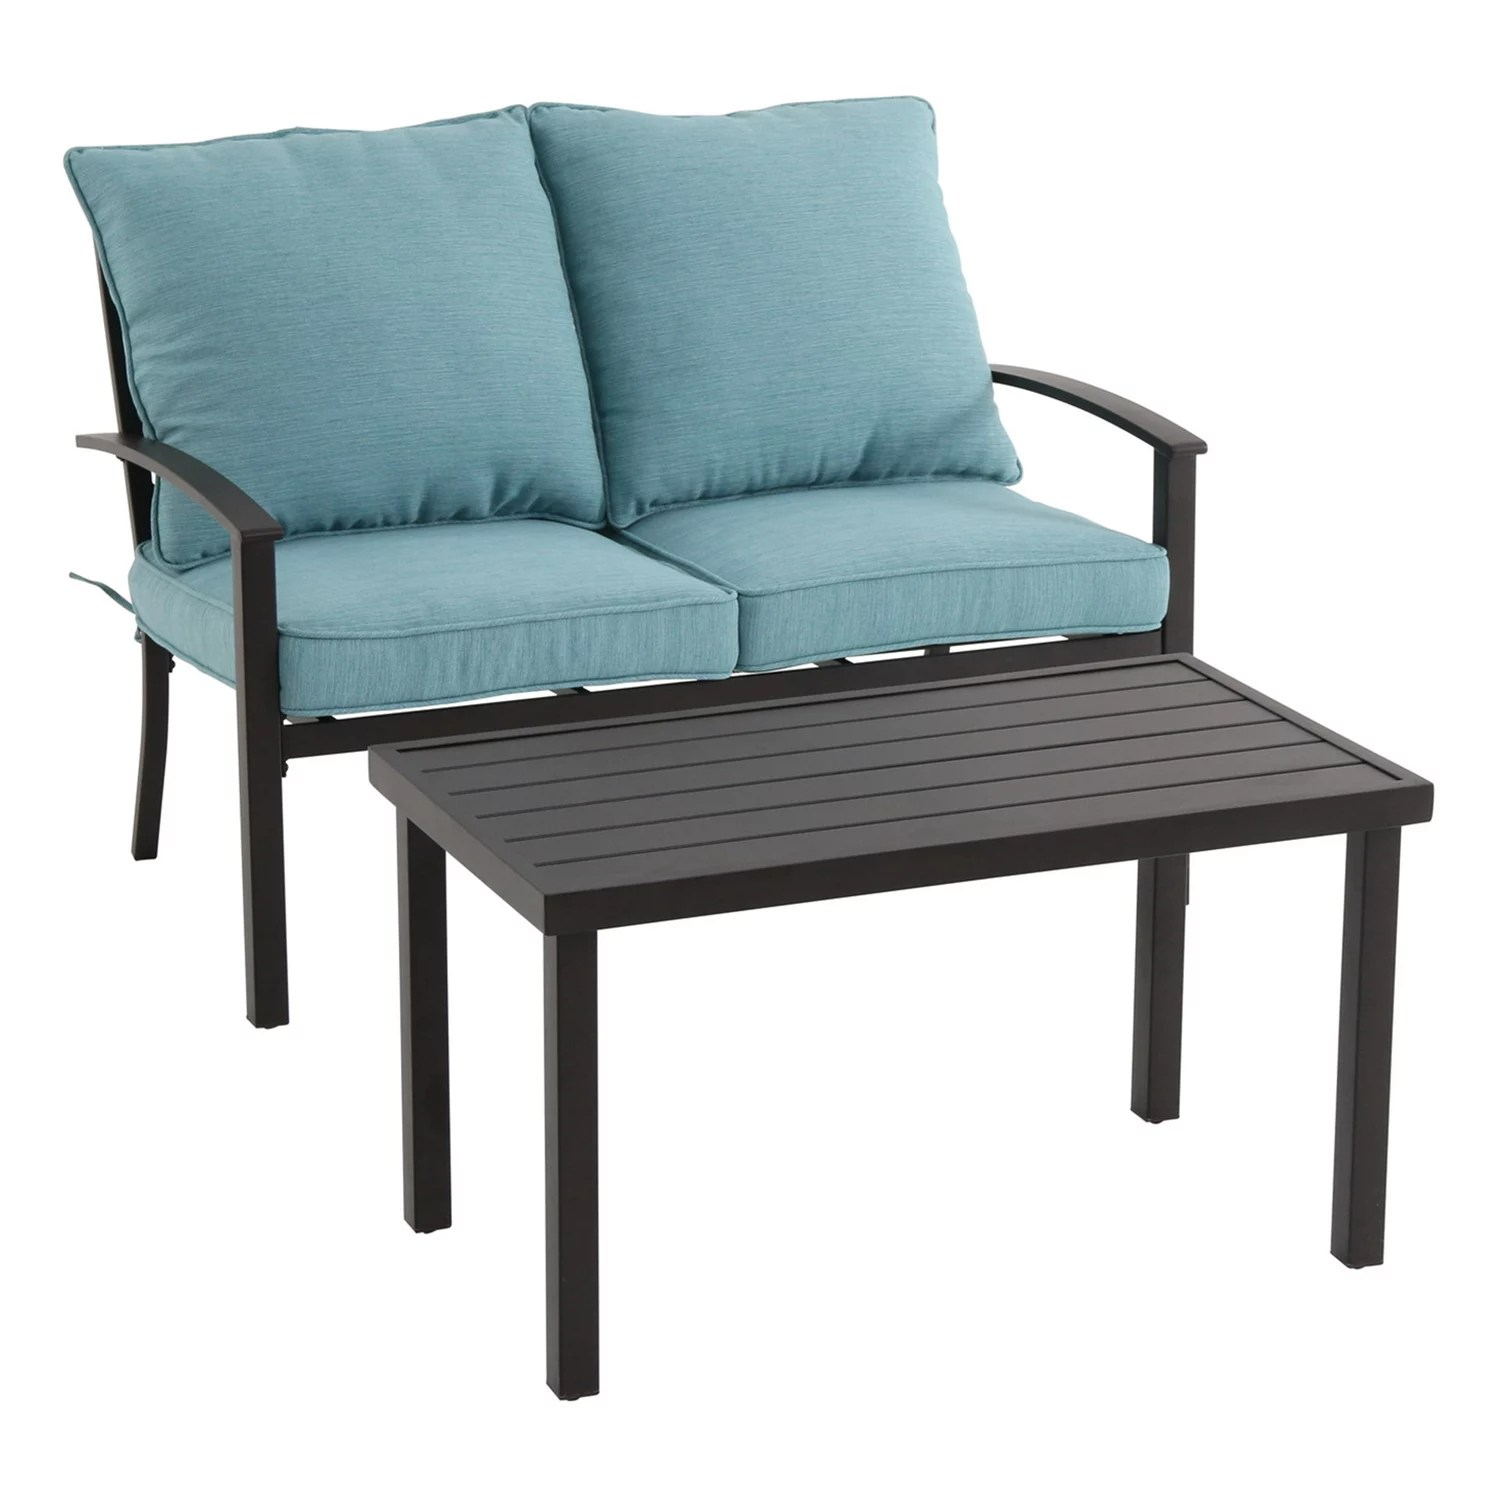 Patio Furniture   Outdoor Furniture   Kohl s SONOMA Goods for Life       Burbank Patio Loveseat   Coffee Table 2 piece Set